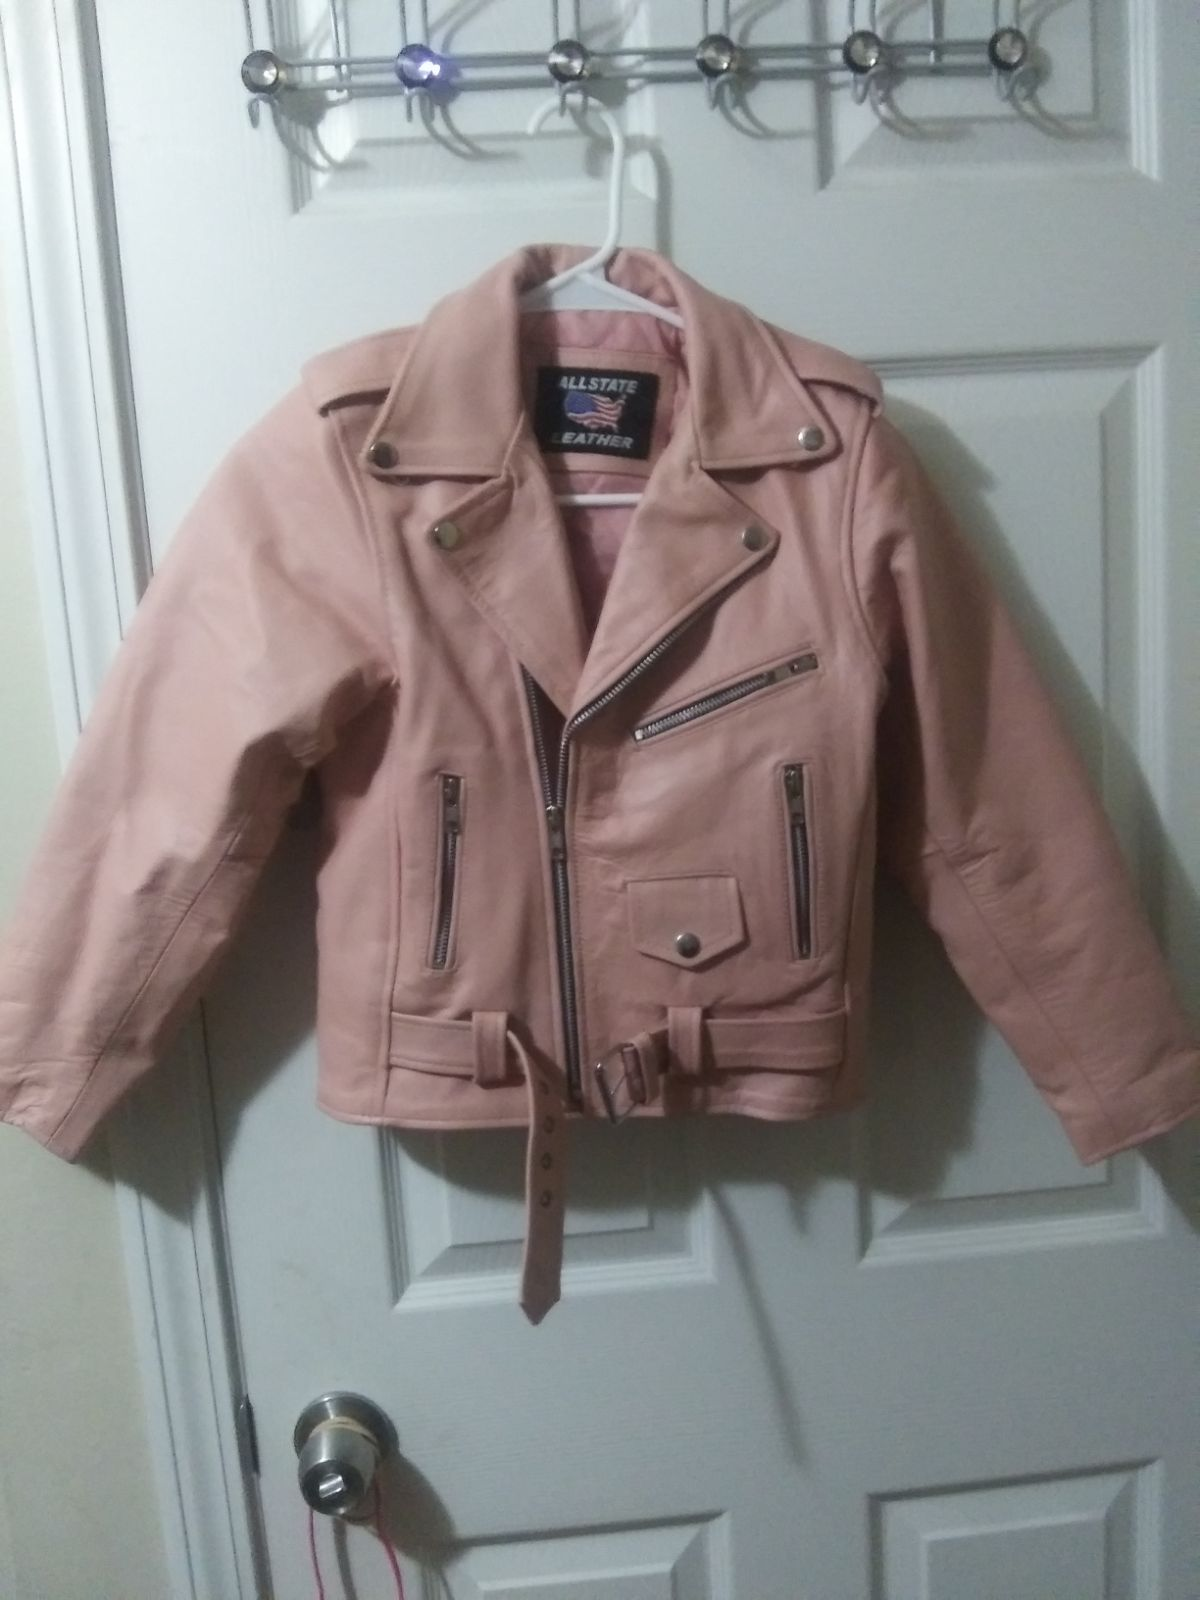 Allstate Leather jacket